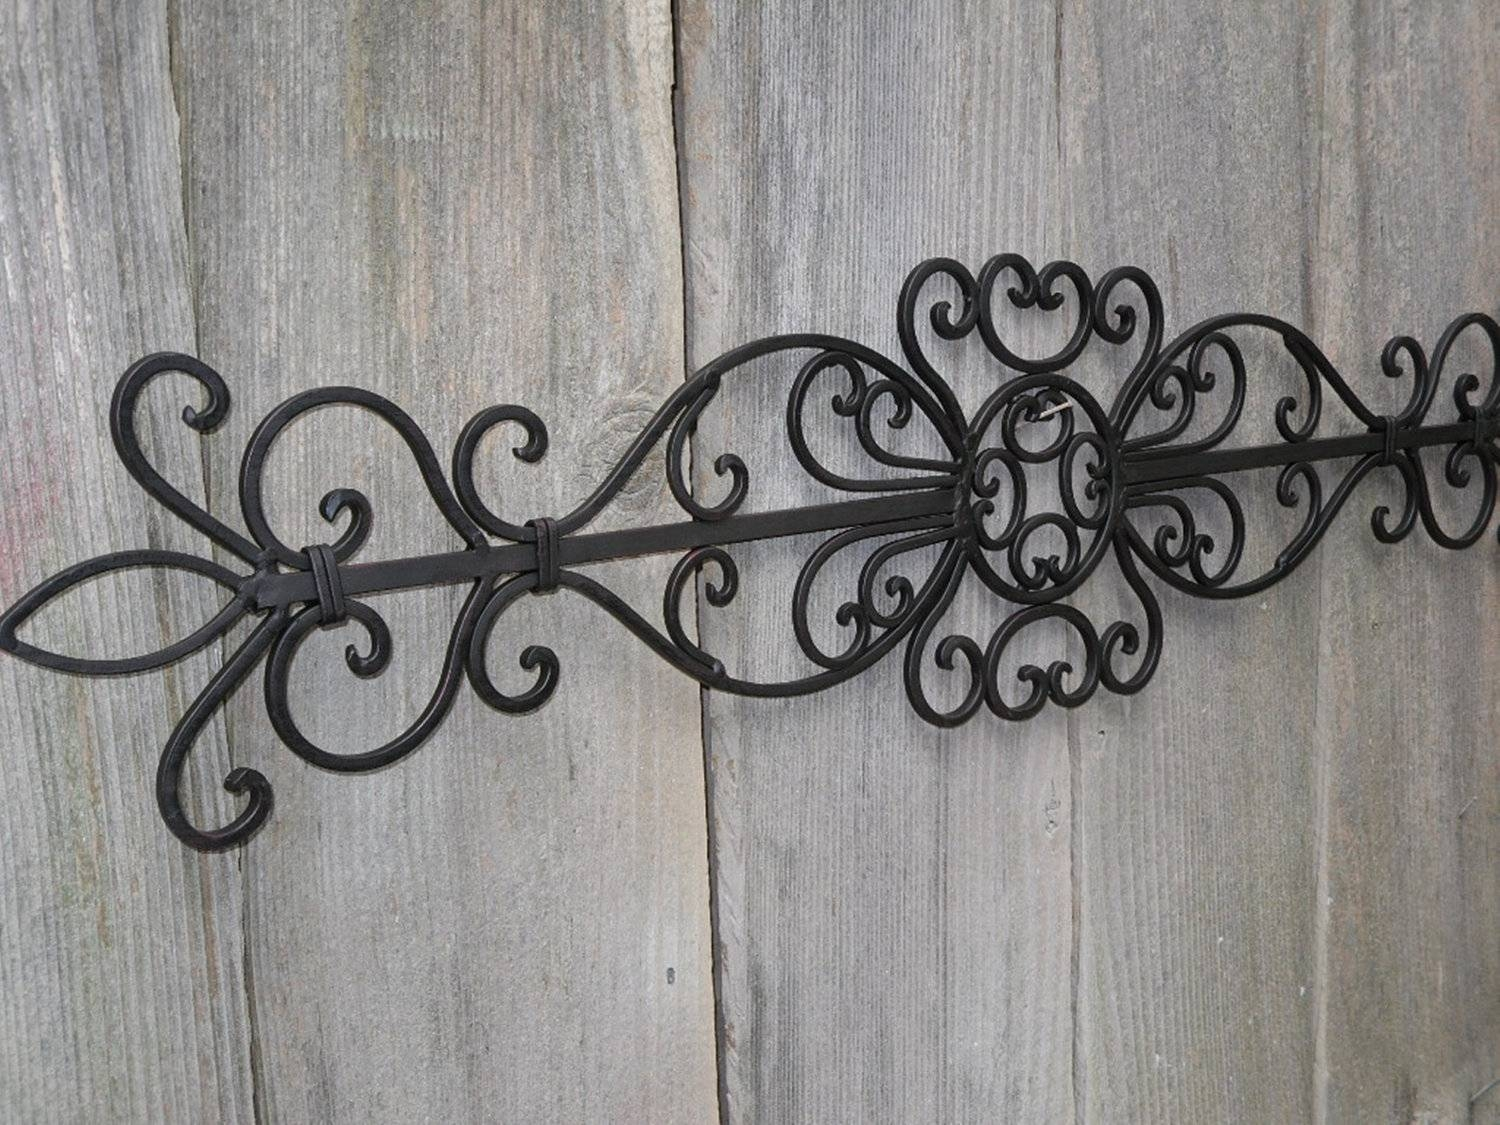 Fleur De Lis Metal Wall Decor Sweet : Fleur De Lis Metal Wall Inside Best And Newest Fleur De Lis Metal Wall Art (View 18 of 25)